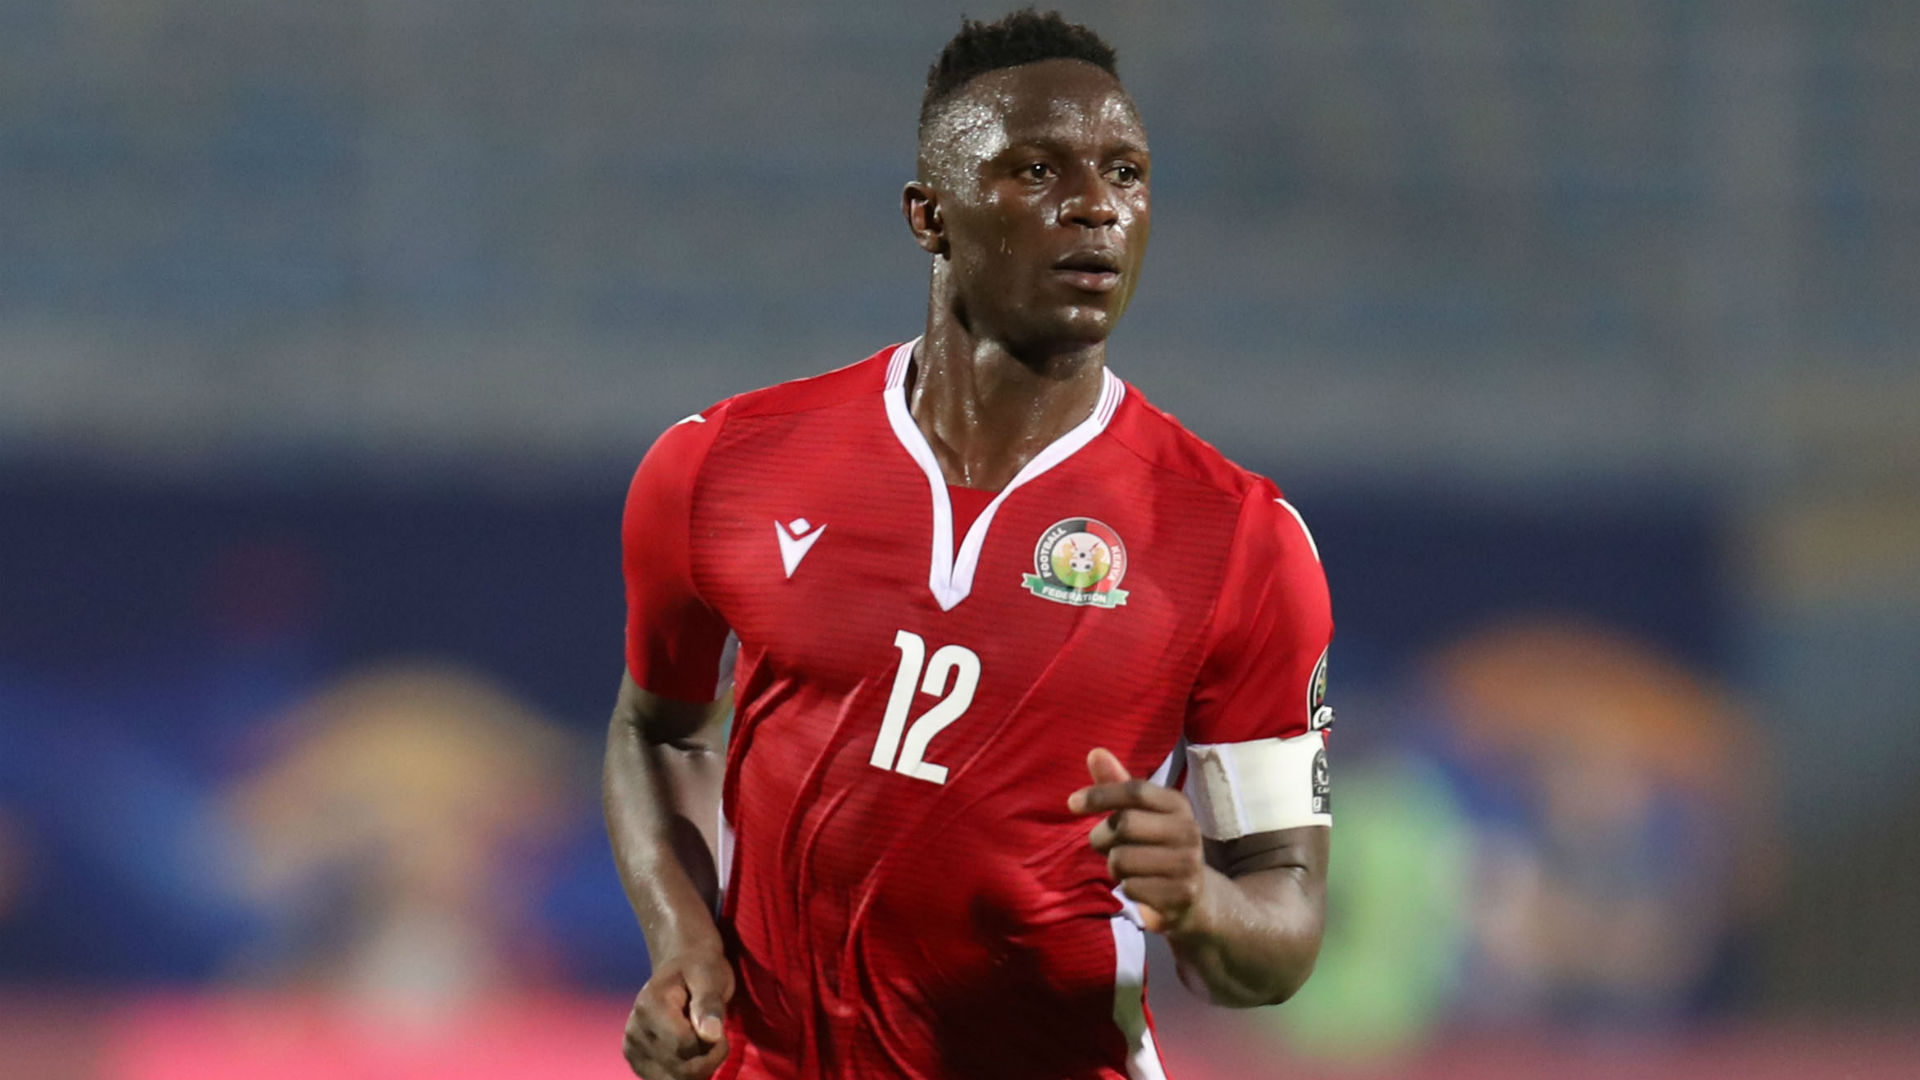 Joash names as World Cup qualifiers team